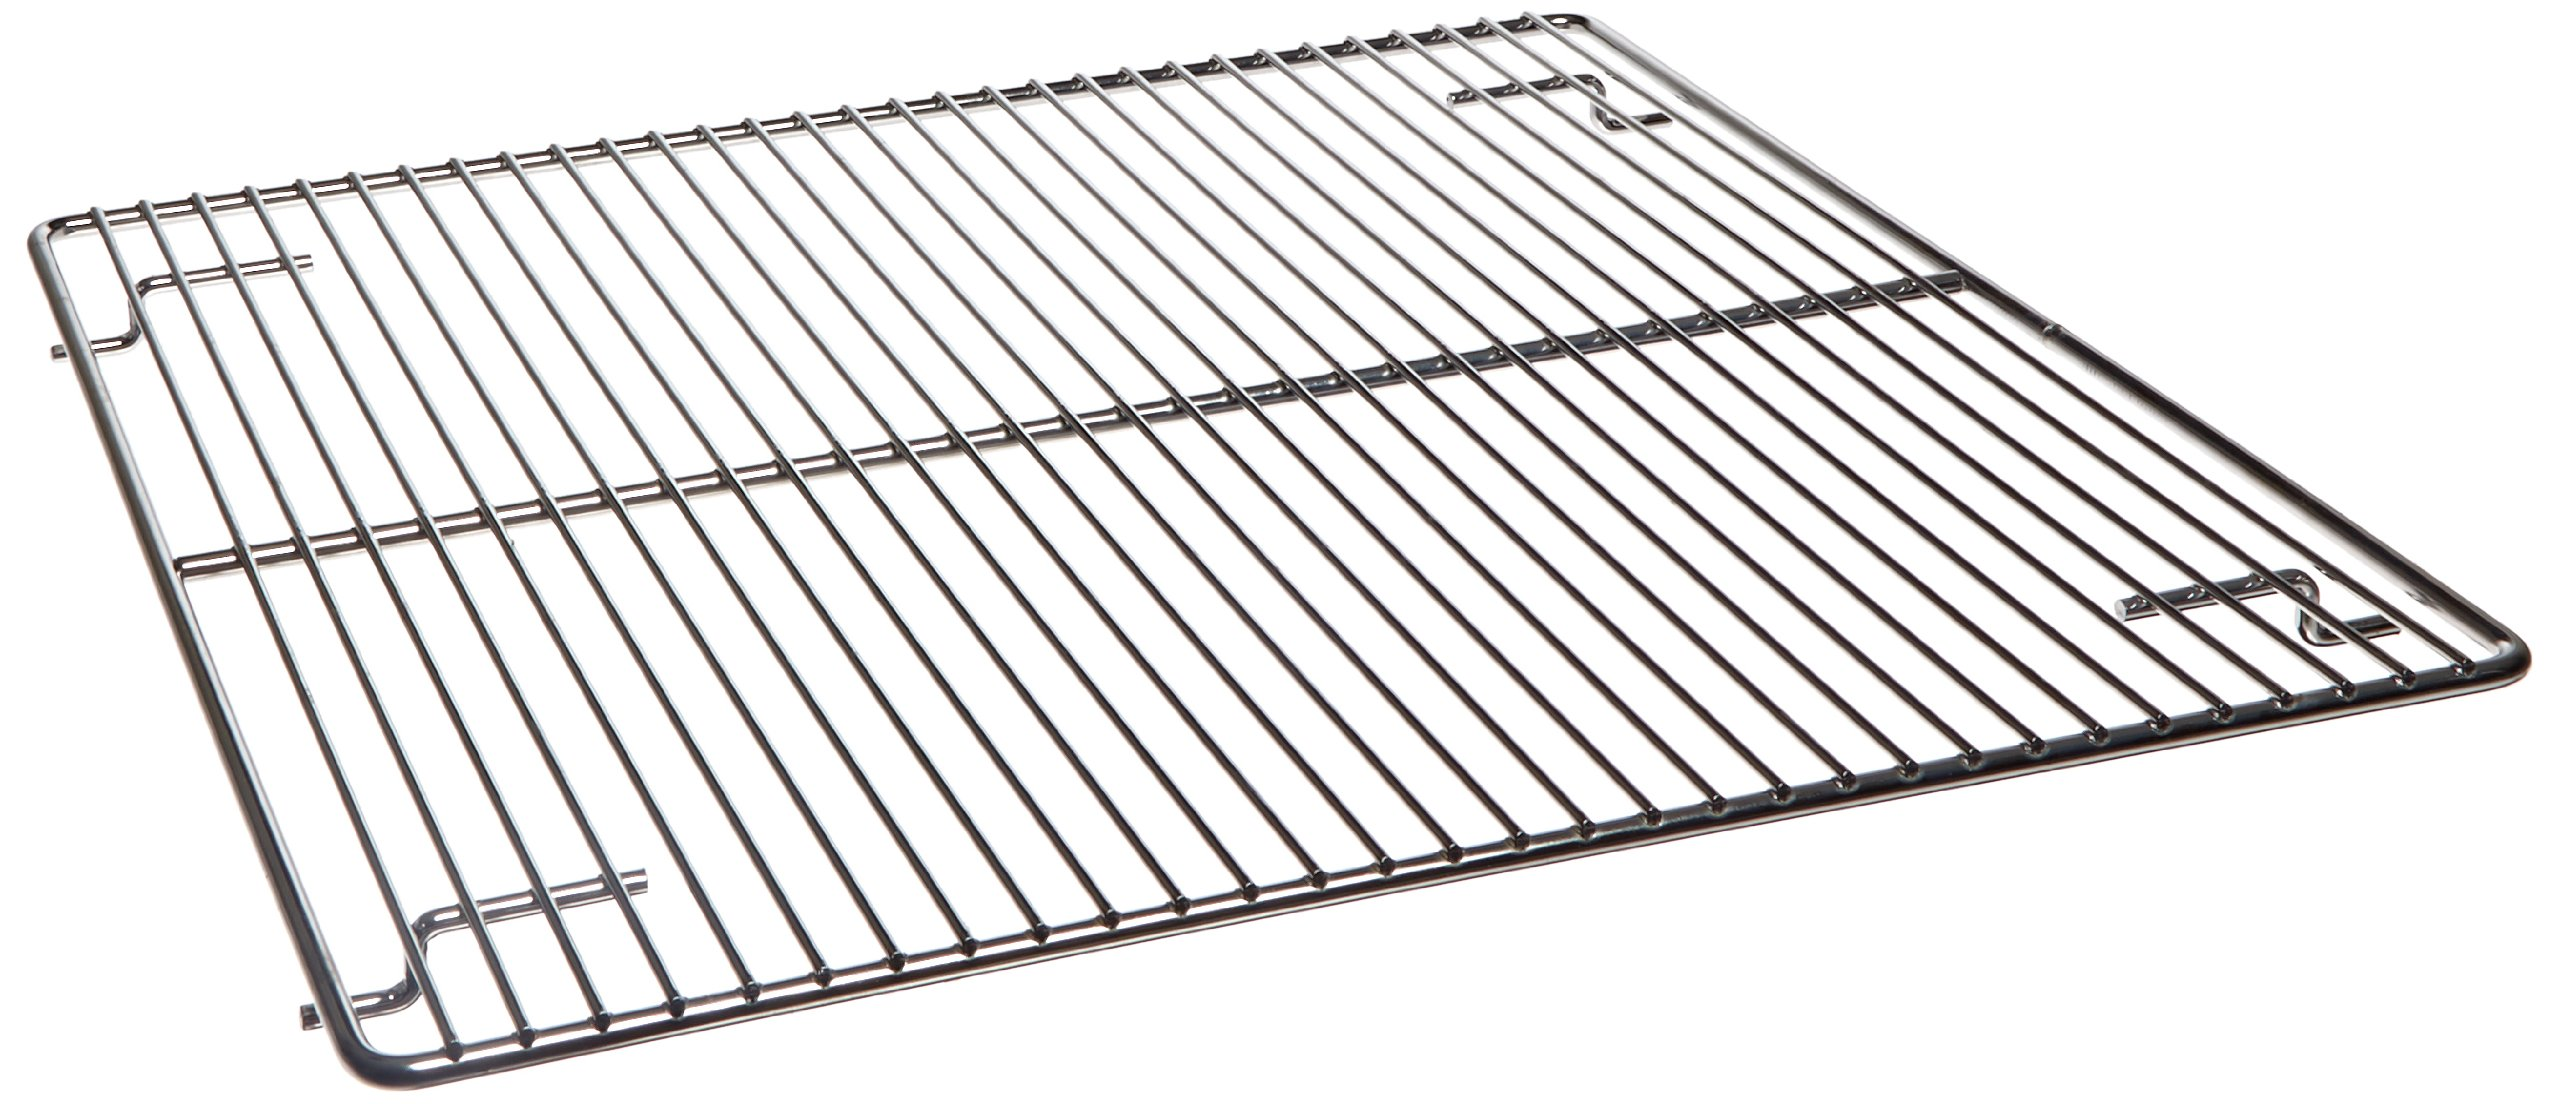 Thermo Scientific ELED 13247S Shelf Kit For Precision and Lindberg/Blue M Incubators and Ovens with 2.5 or 5-Cubic Foot Capacity